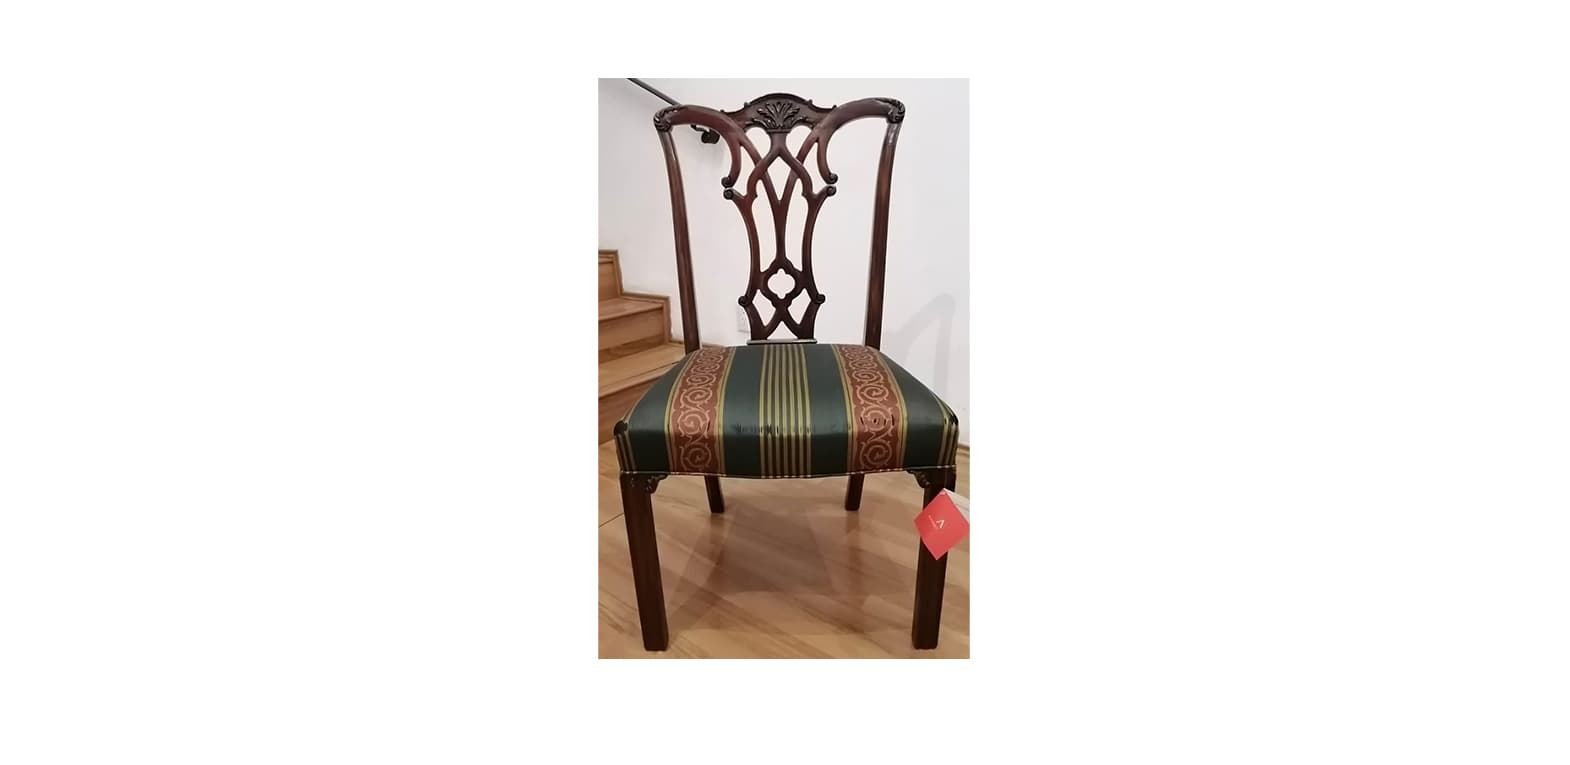 CHAPWELL CHAIR